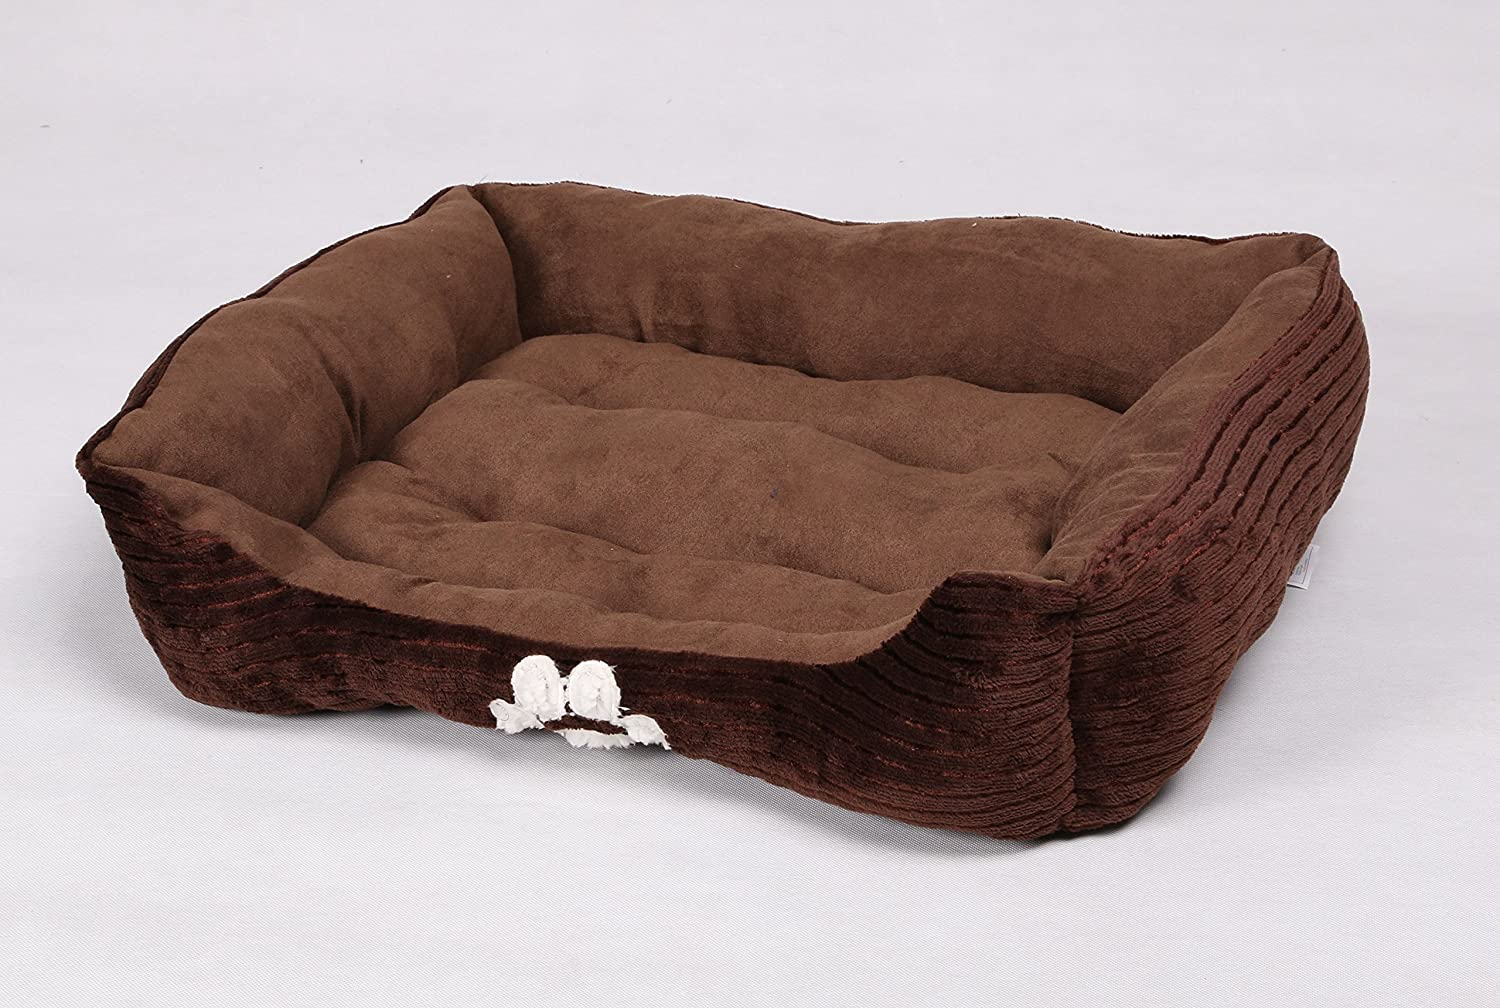 Long Rich HCT REC-005 Reversible Rectangle Pet Bed with Dog Paw Printing, Coffee, By Happycare Textiles, 25 by 21 inches : Pet Supplies